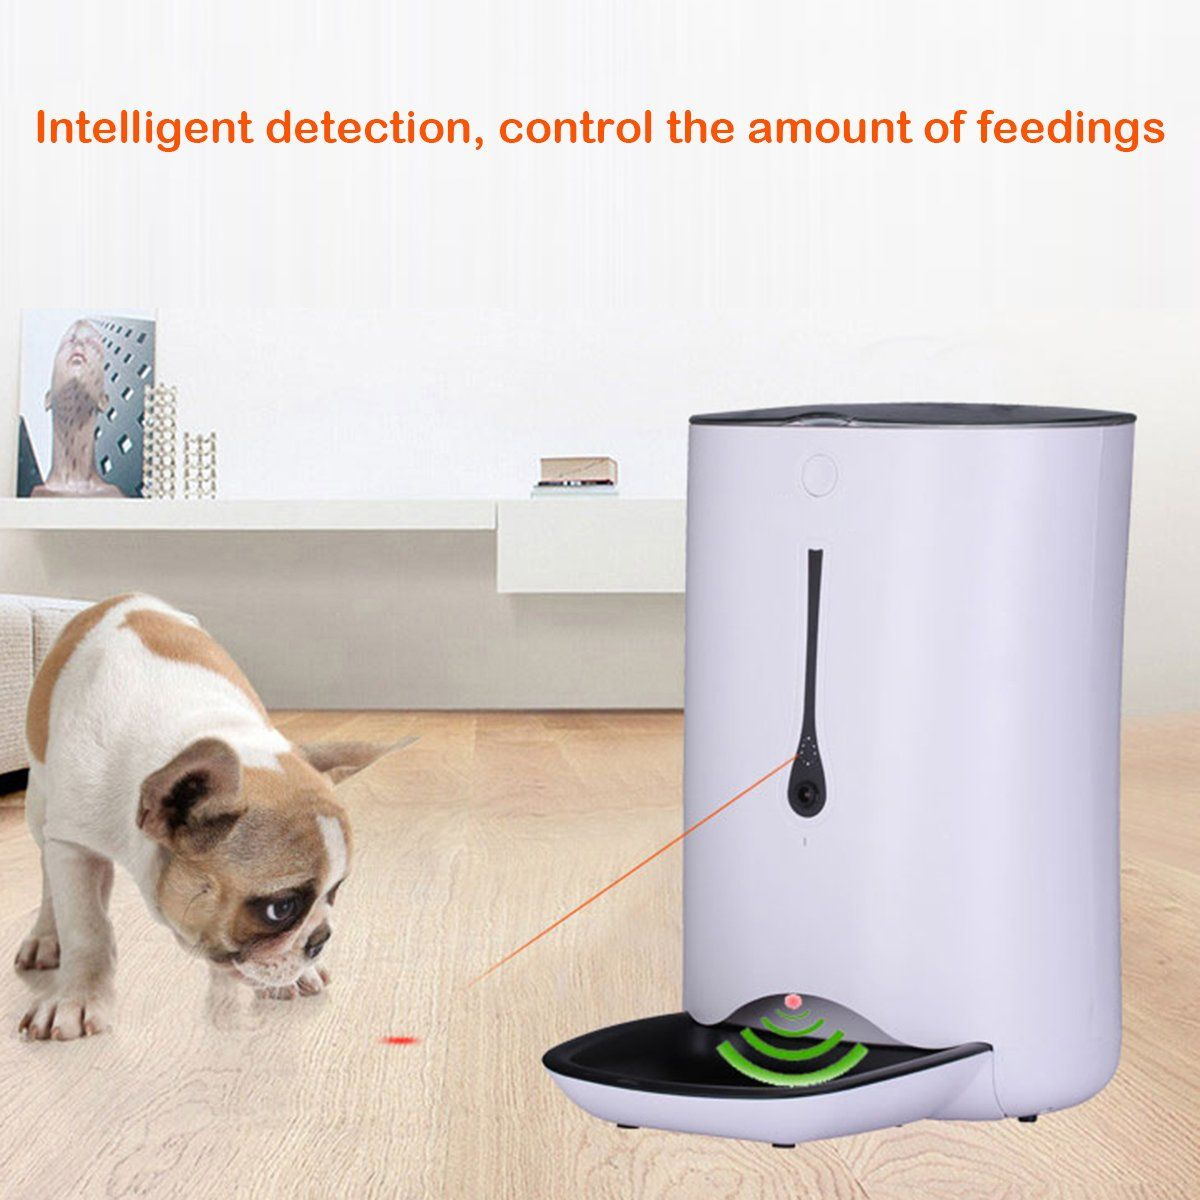 Automatic Pet Feeder Food Dispenser For Dog And Cat Features